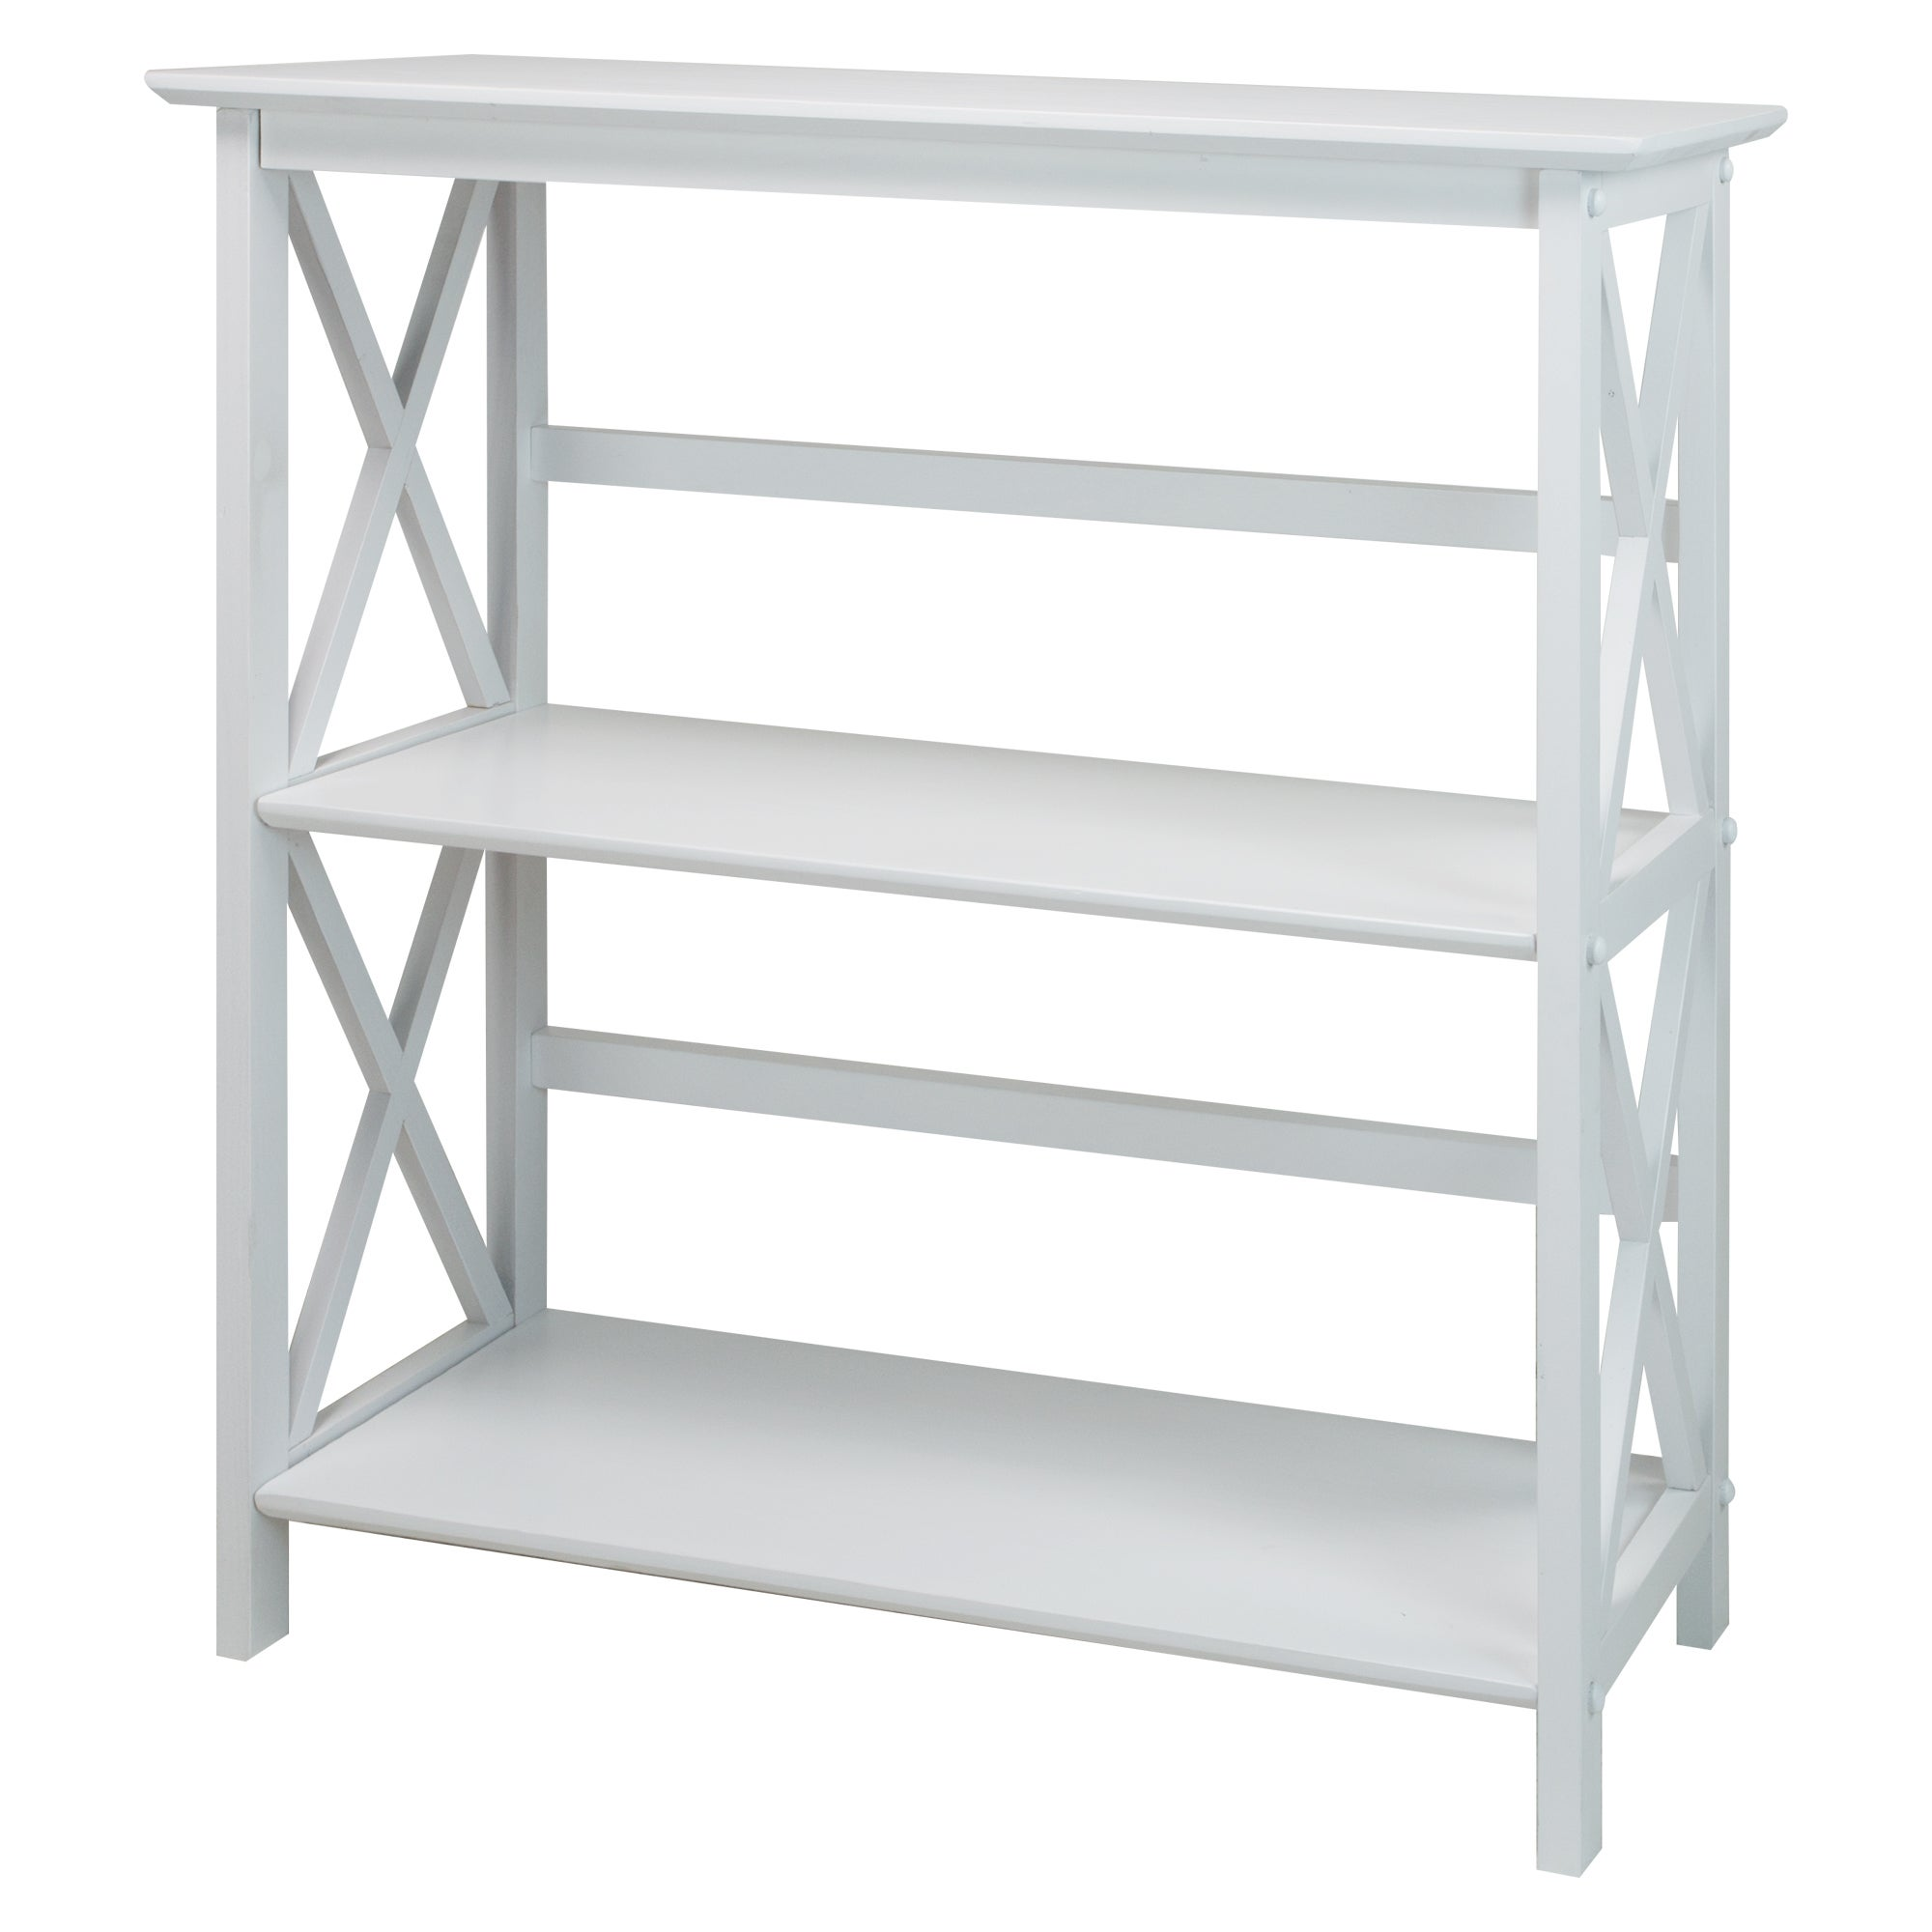 tier com walmart bookcase finishes mainstays bookcases ip shelf multiple